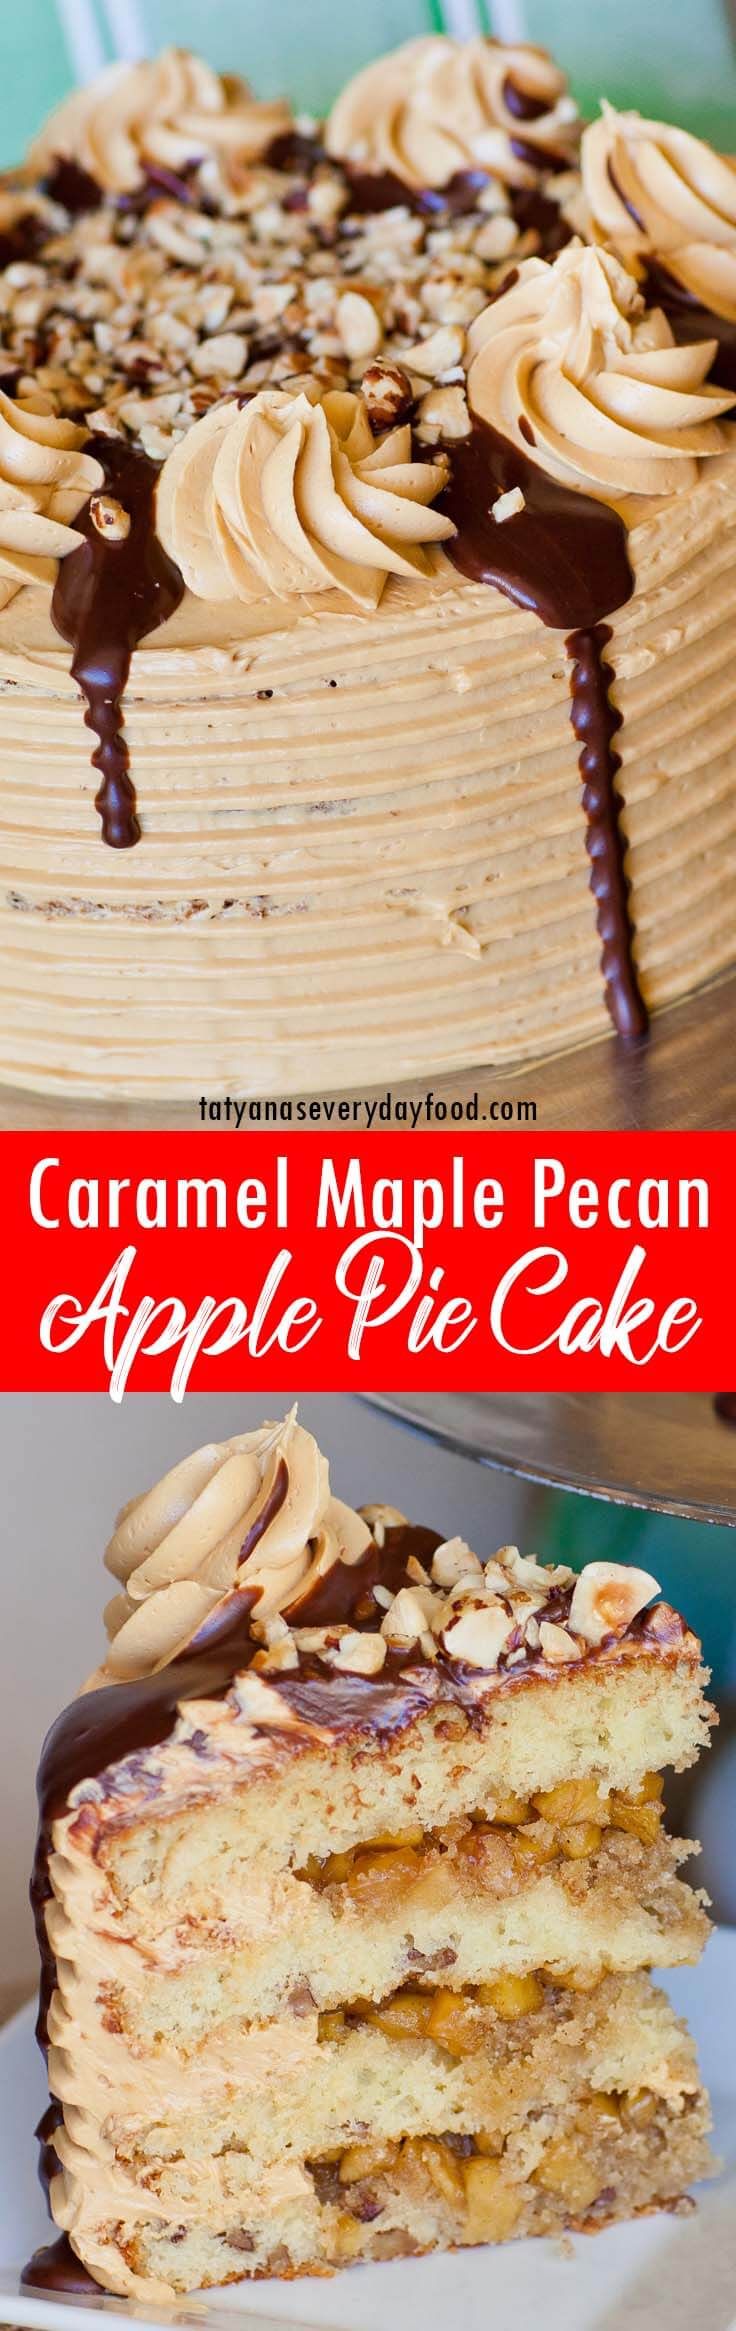 Apple Pie Maple Pecan Cake video recipe